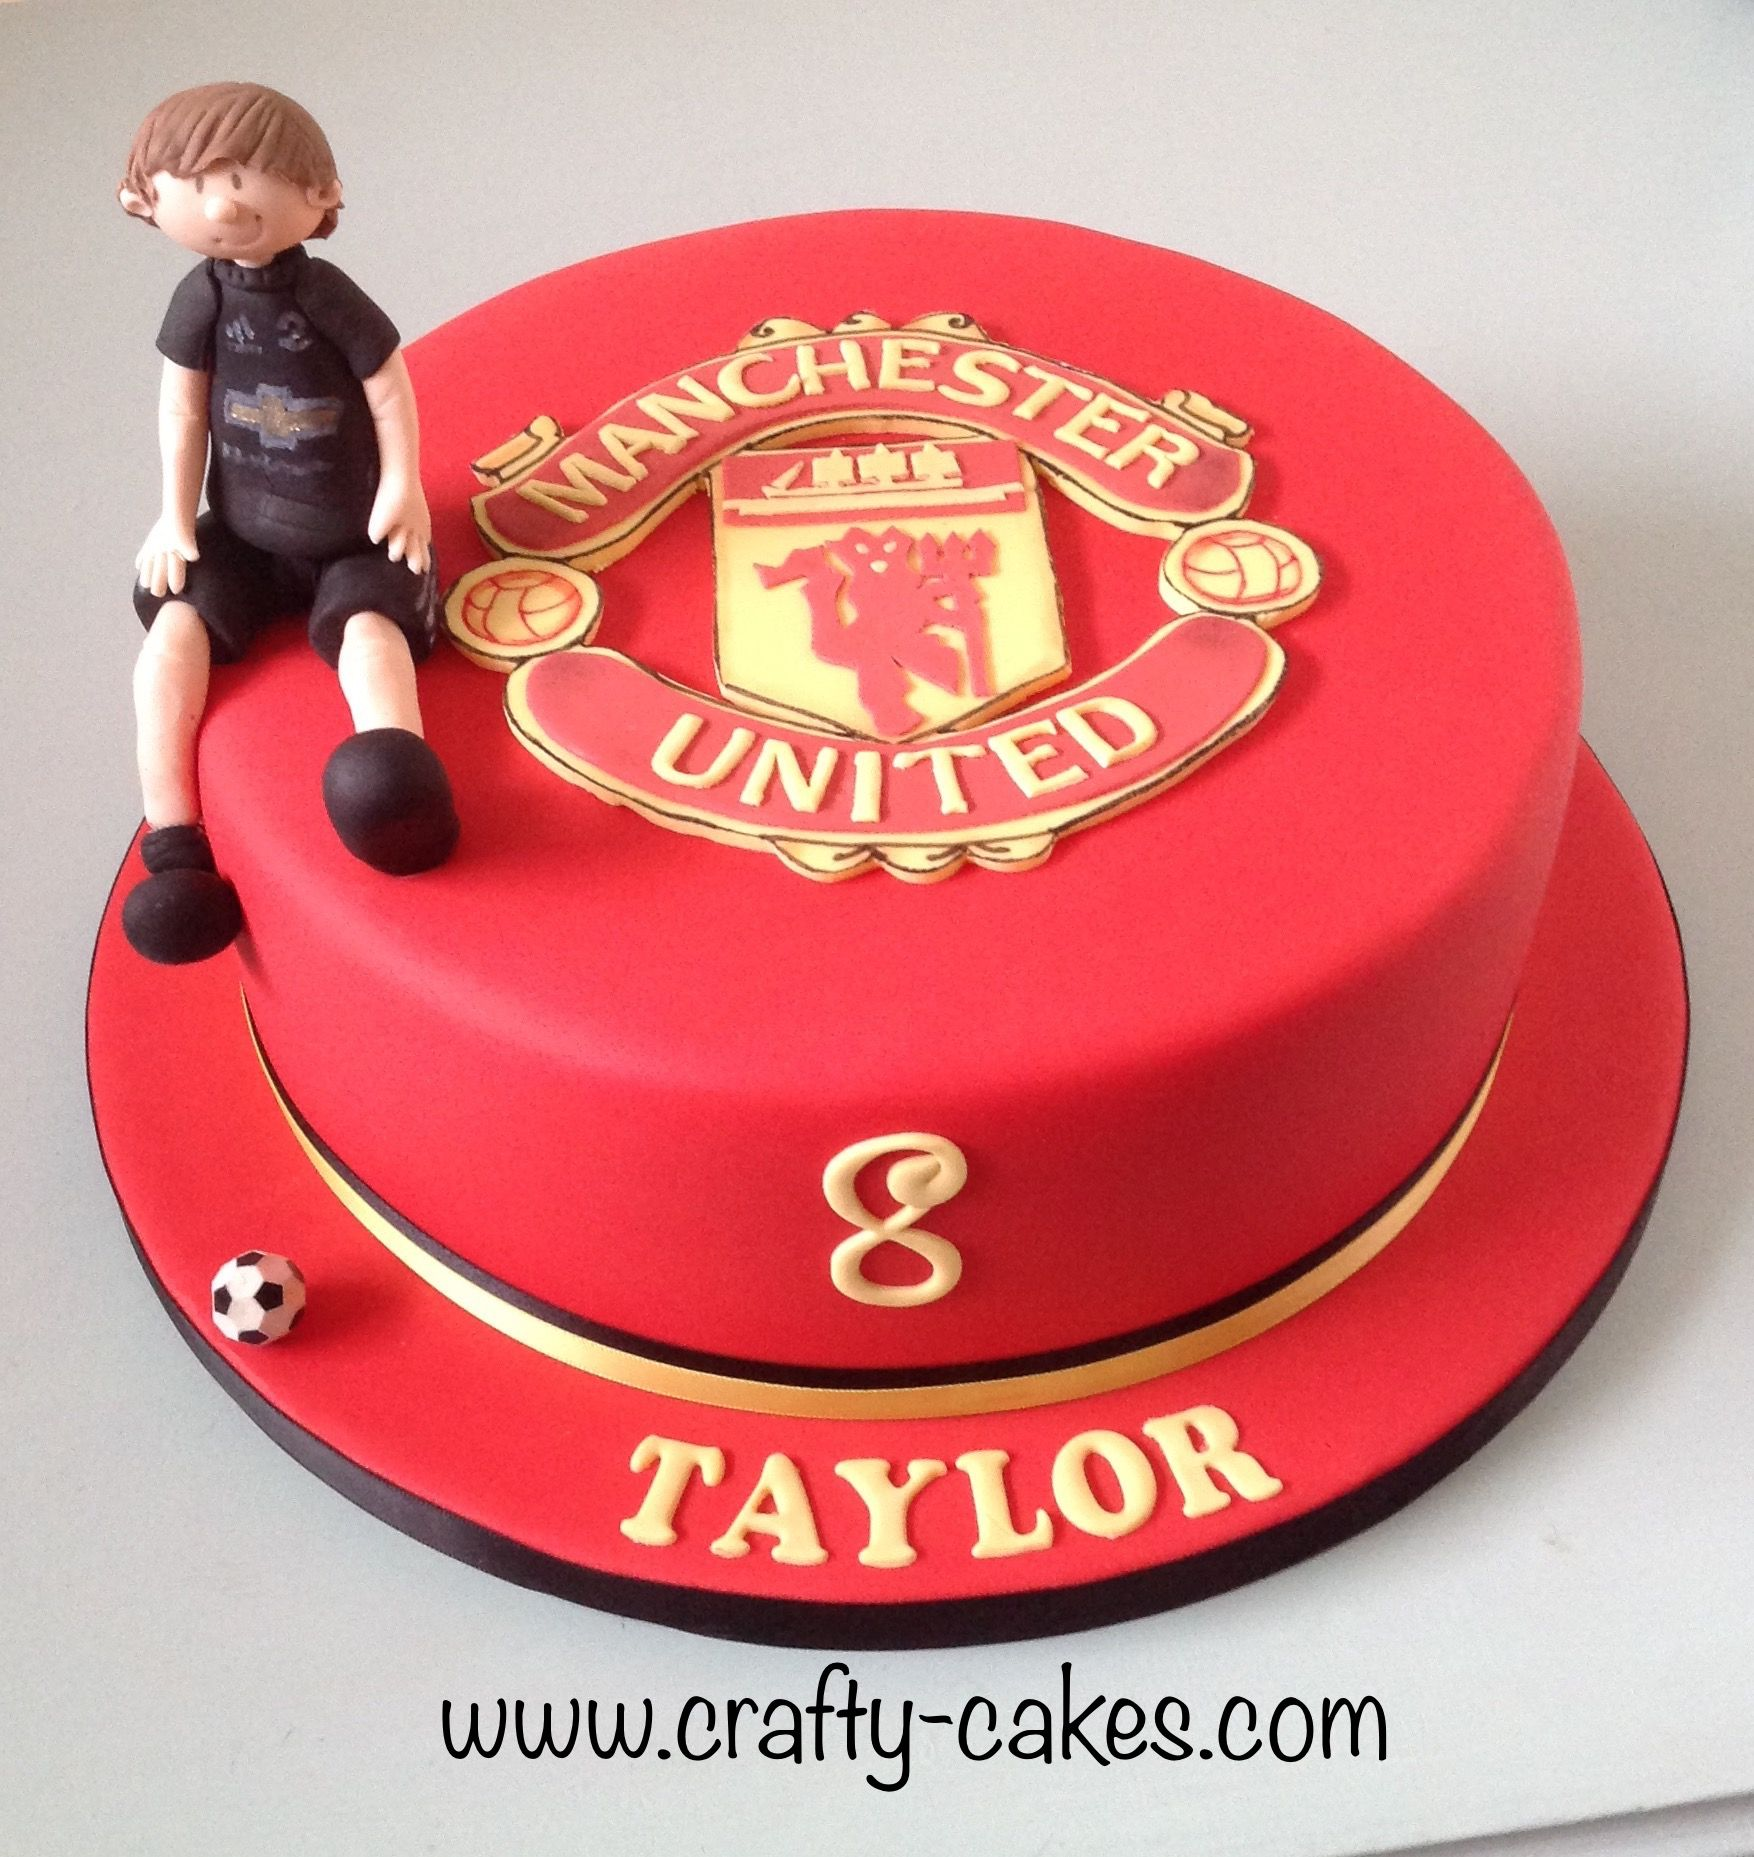 Manchester United Edible Birthday Cake Topper Or Cupcake Topper Decor Manchester United Birthday Cake Edible Cake Toppers Birthday Cake Toppers